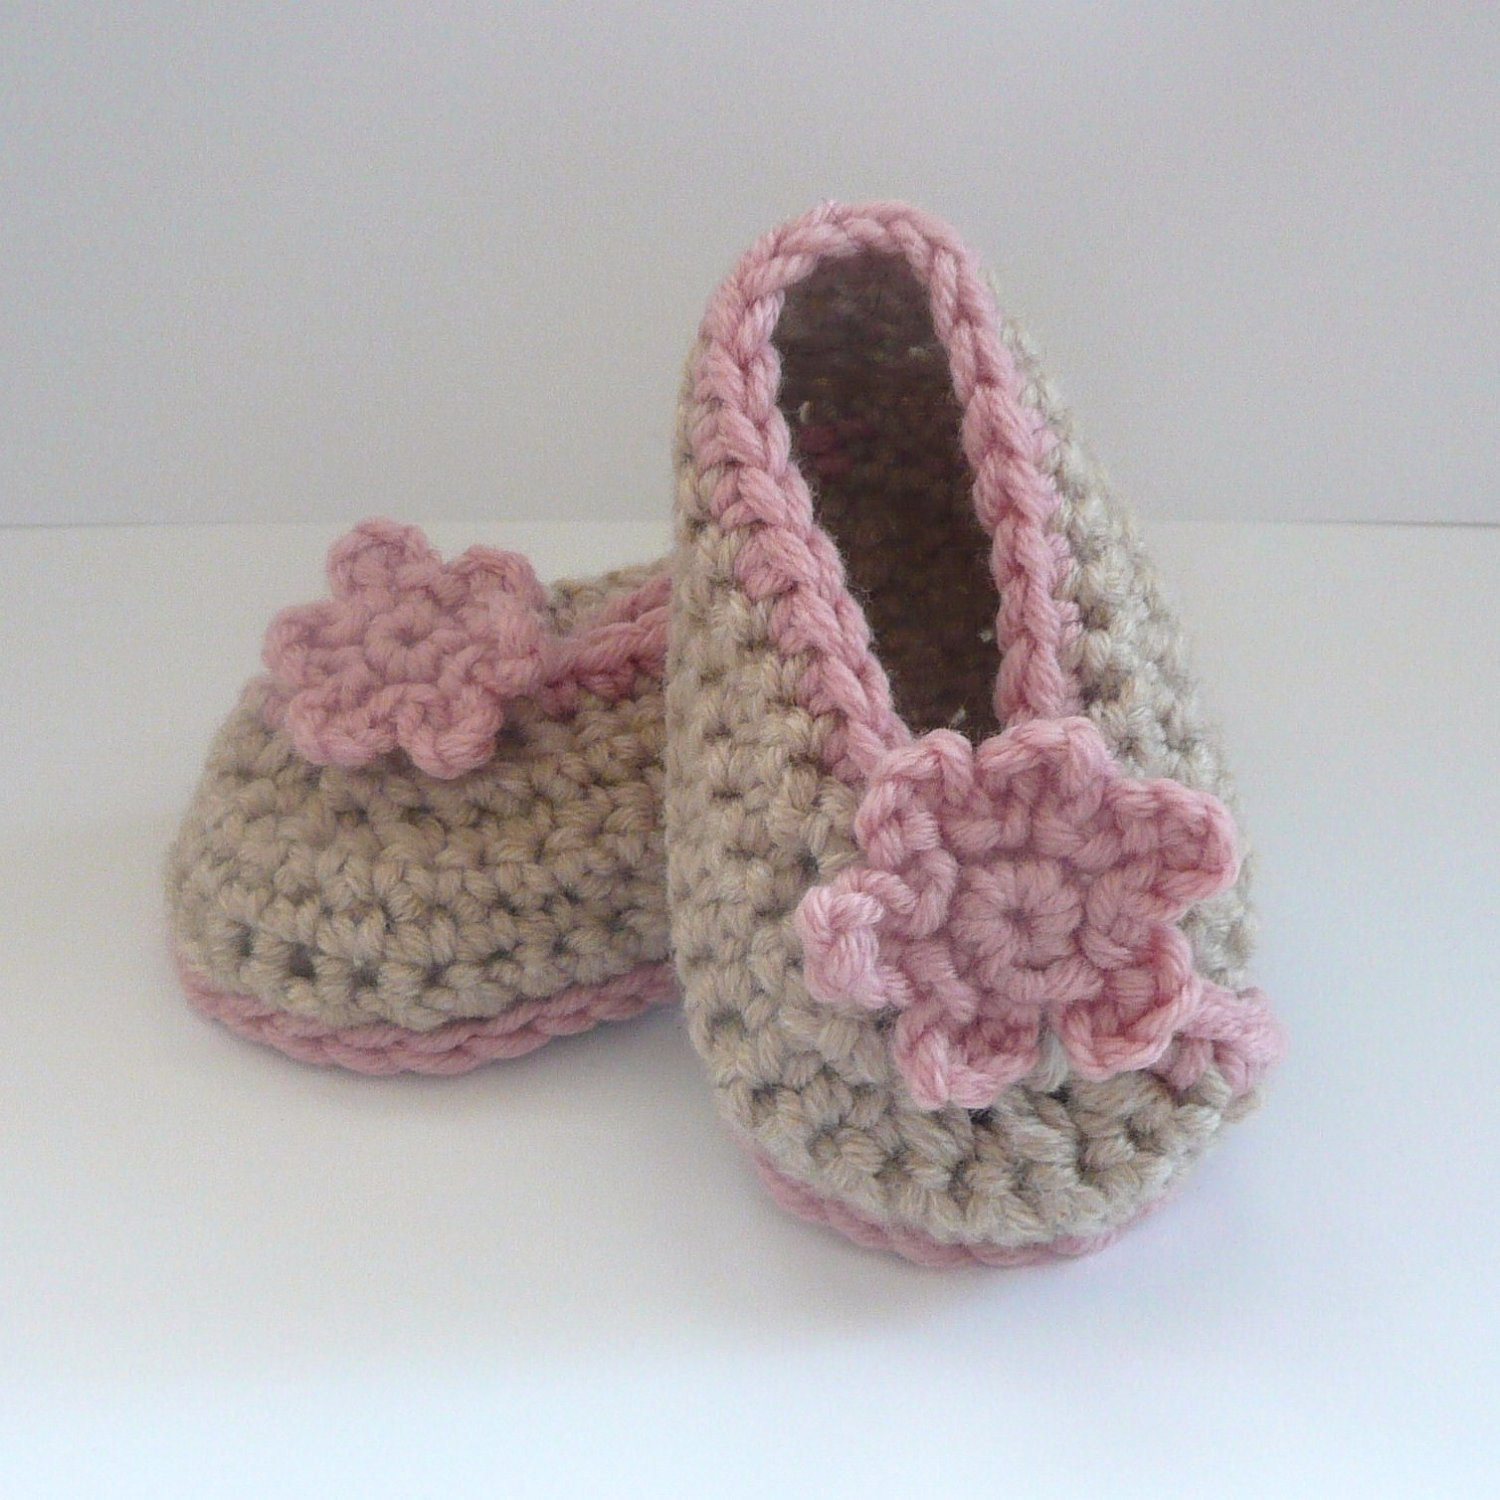 Inspirational Crochet Pattern Baby Booties Crossover Baby Shoes Instant Crochet Baby socks Of New Berry Baby Booties Knitting Pattern Easy Crochet Baby socks